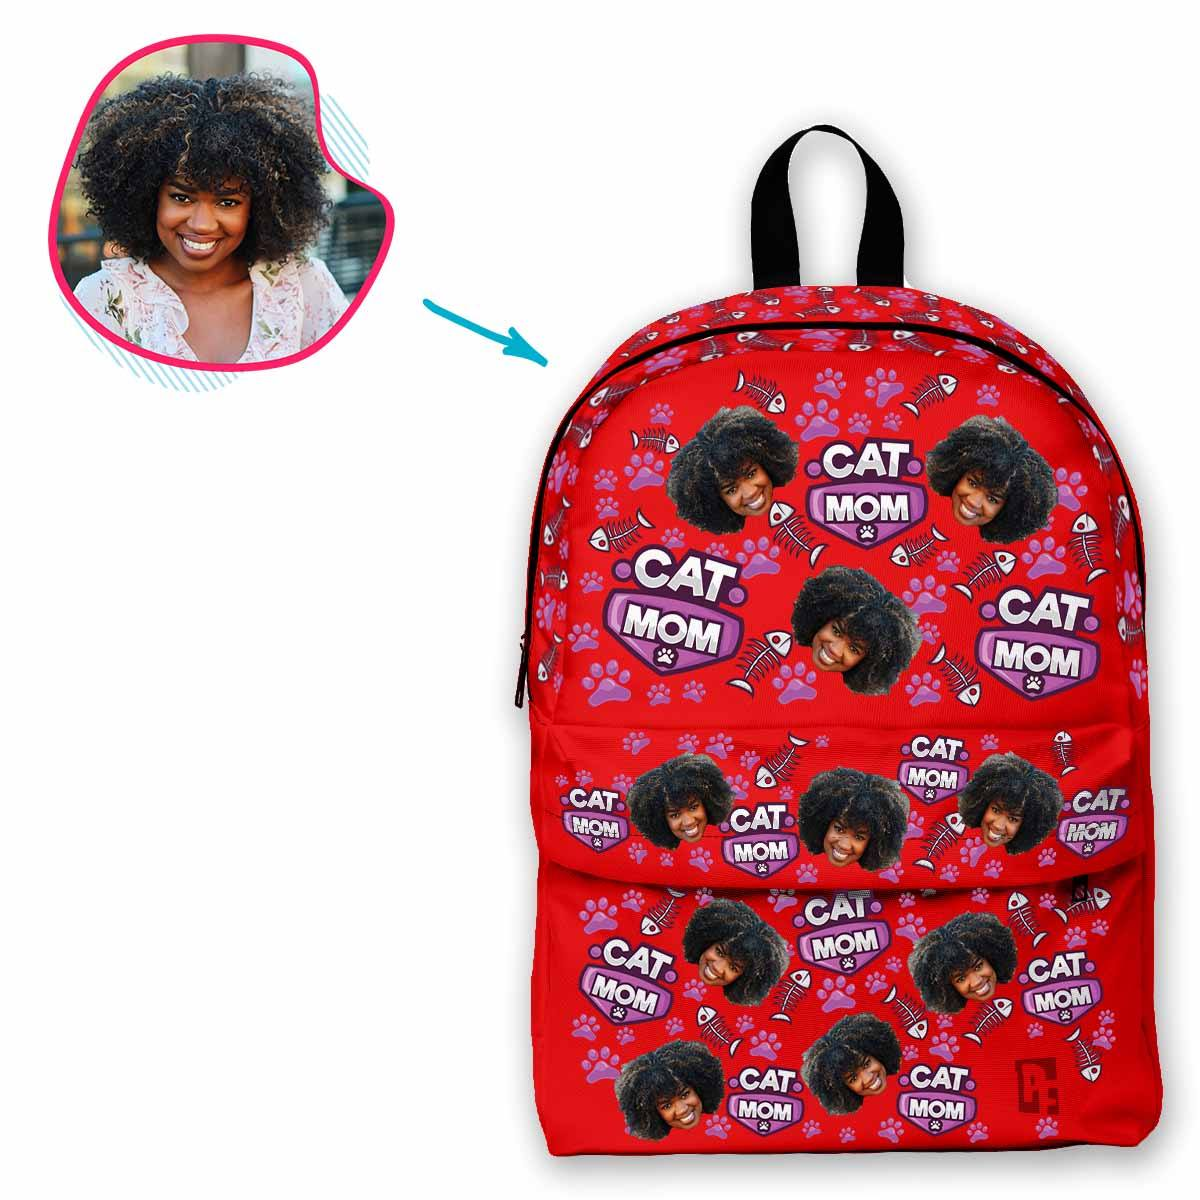 red Cat Mom classic backpack personalized with photo of face printed on it